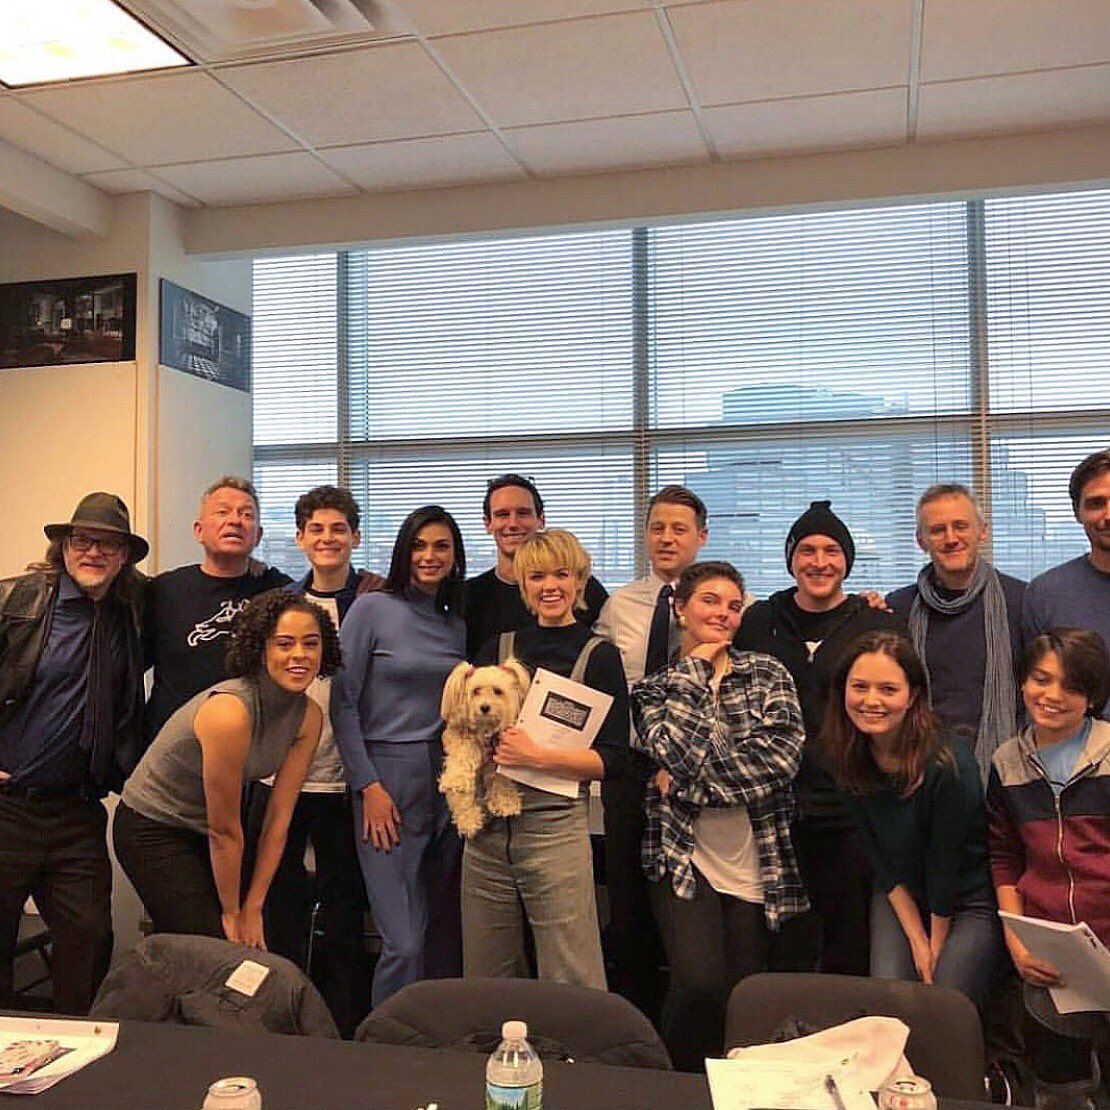 Our family. #fbf to the last #Gotham read thru. For real this time. @Gotham<br>http://pic.twitter.com/T4wQEnLq4e